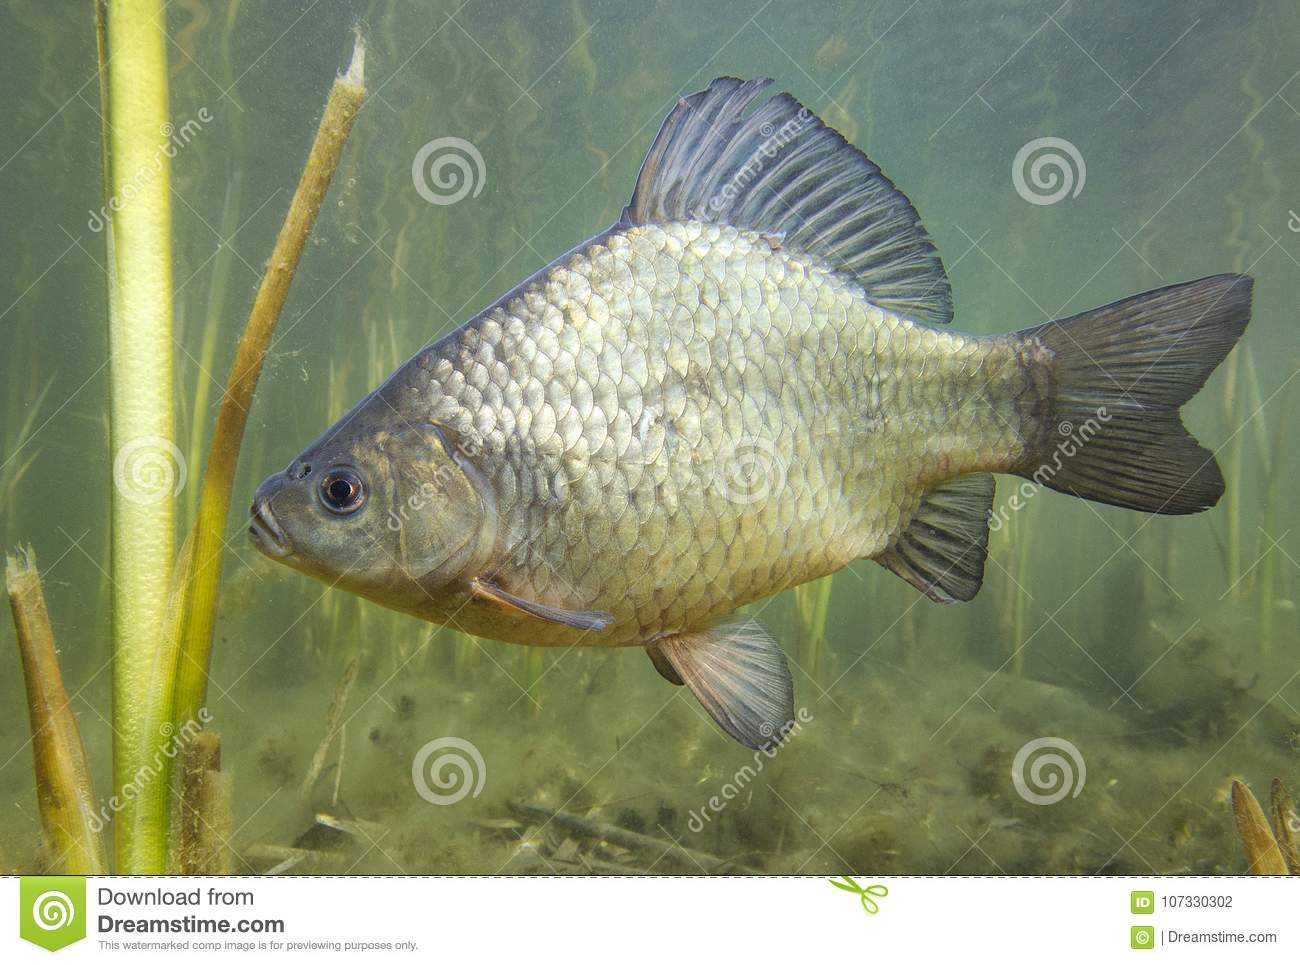 How to catch a crucian carp on a float rod - advice from anglers 65